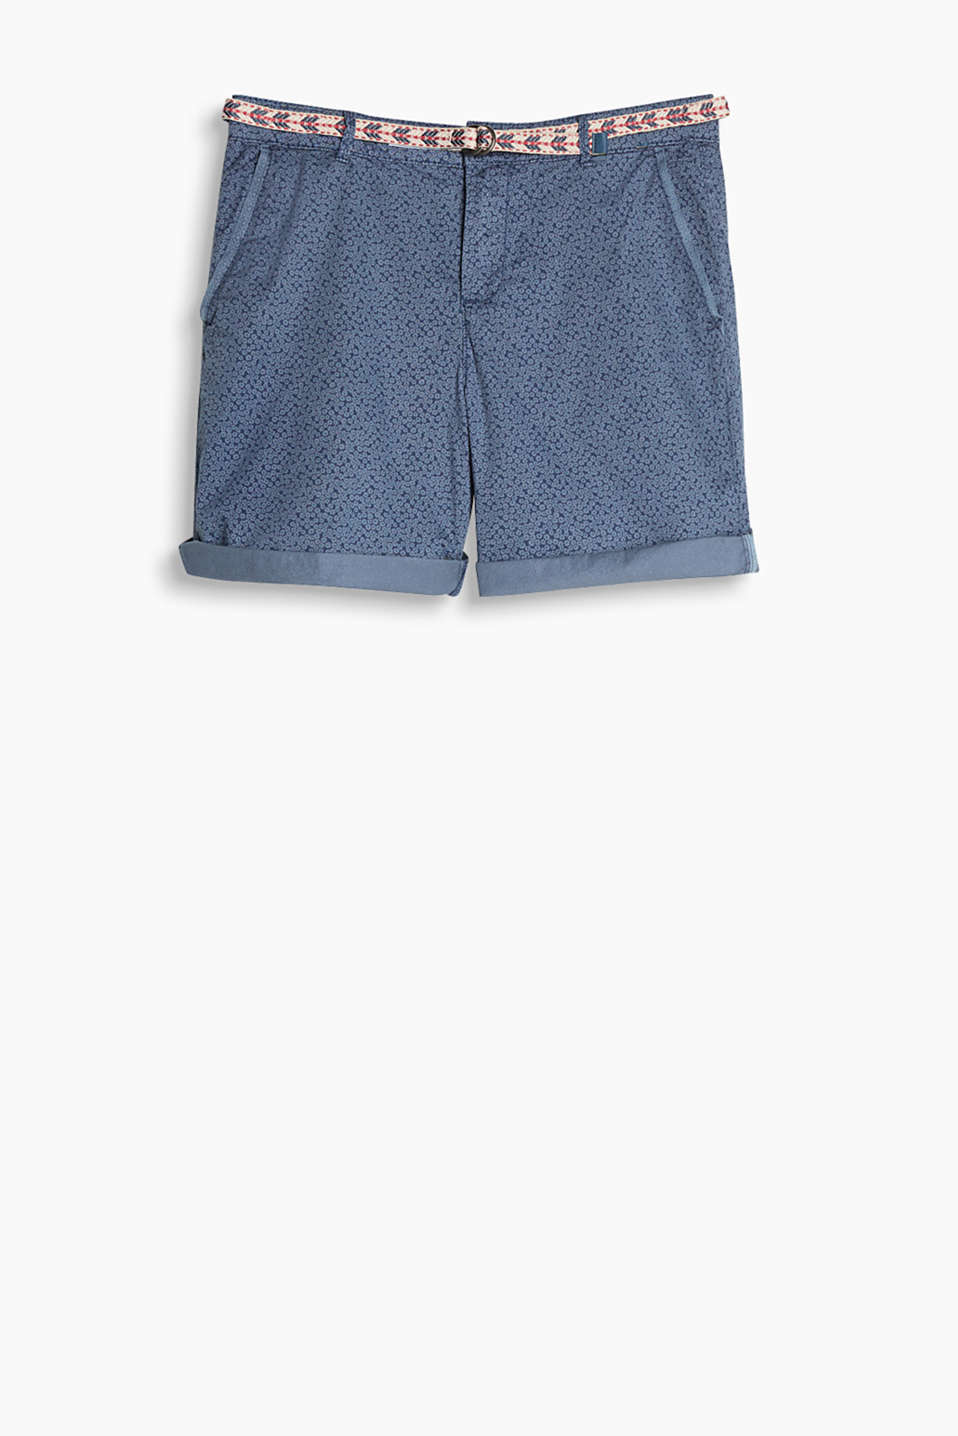 Lightweight stretch cotton shorts in a washed look with a colourful textile belt